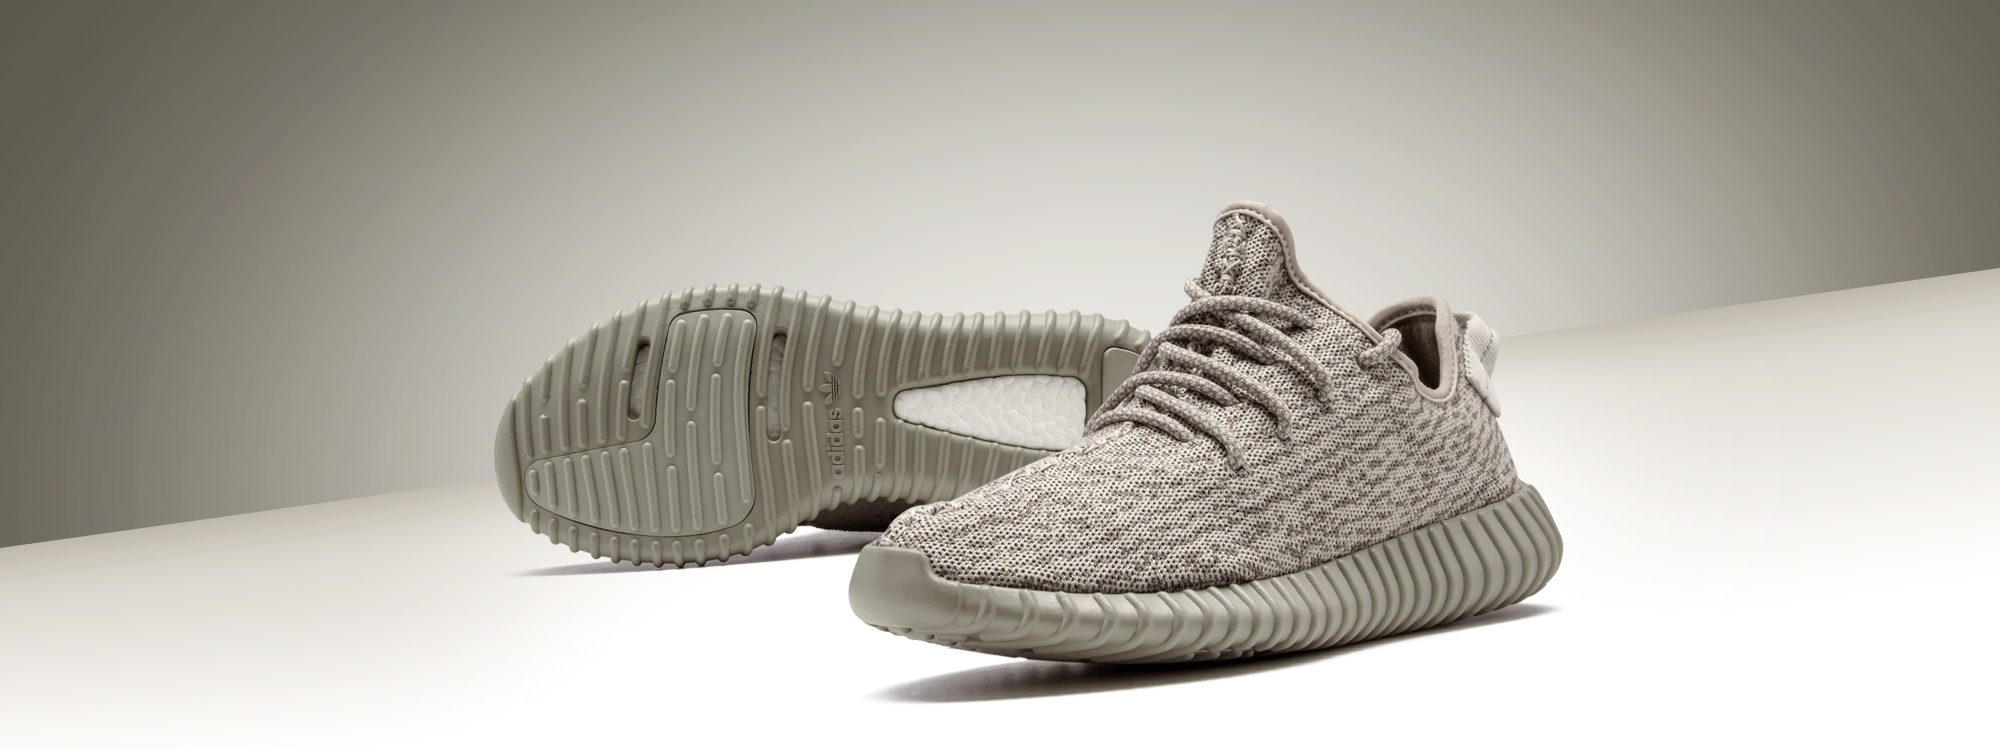 Adidas Yeezy Boost 350 Moonrock shoes